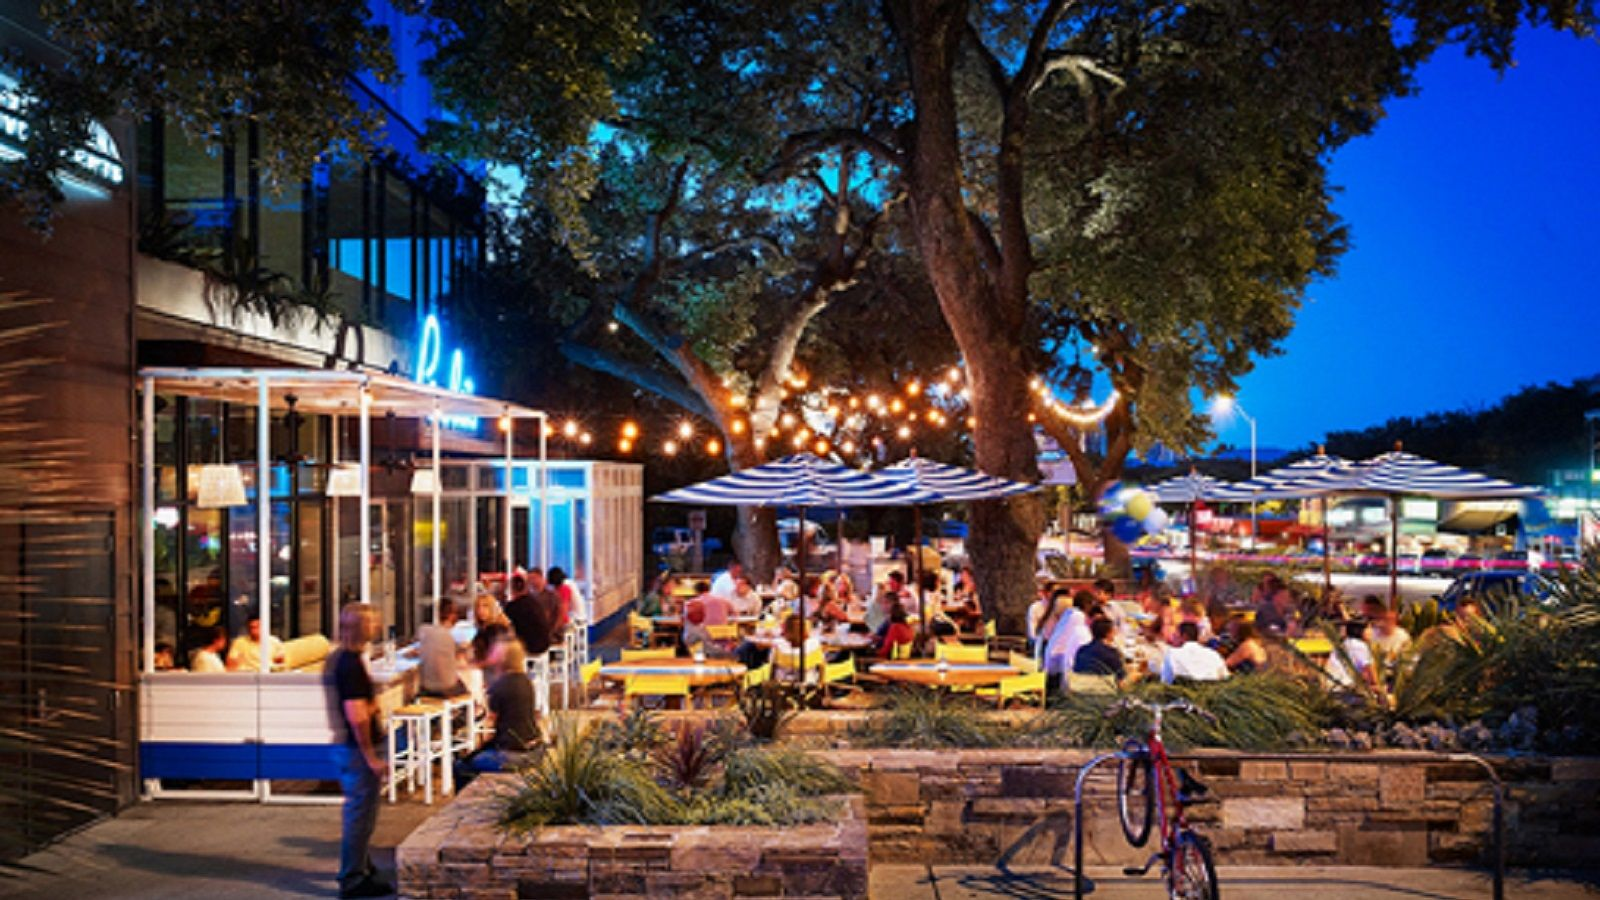 Hotels Near South Congress Austin - Perla's